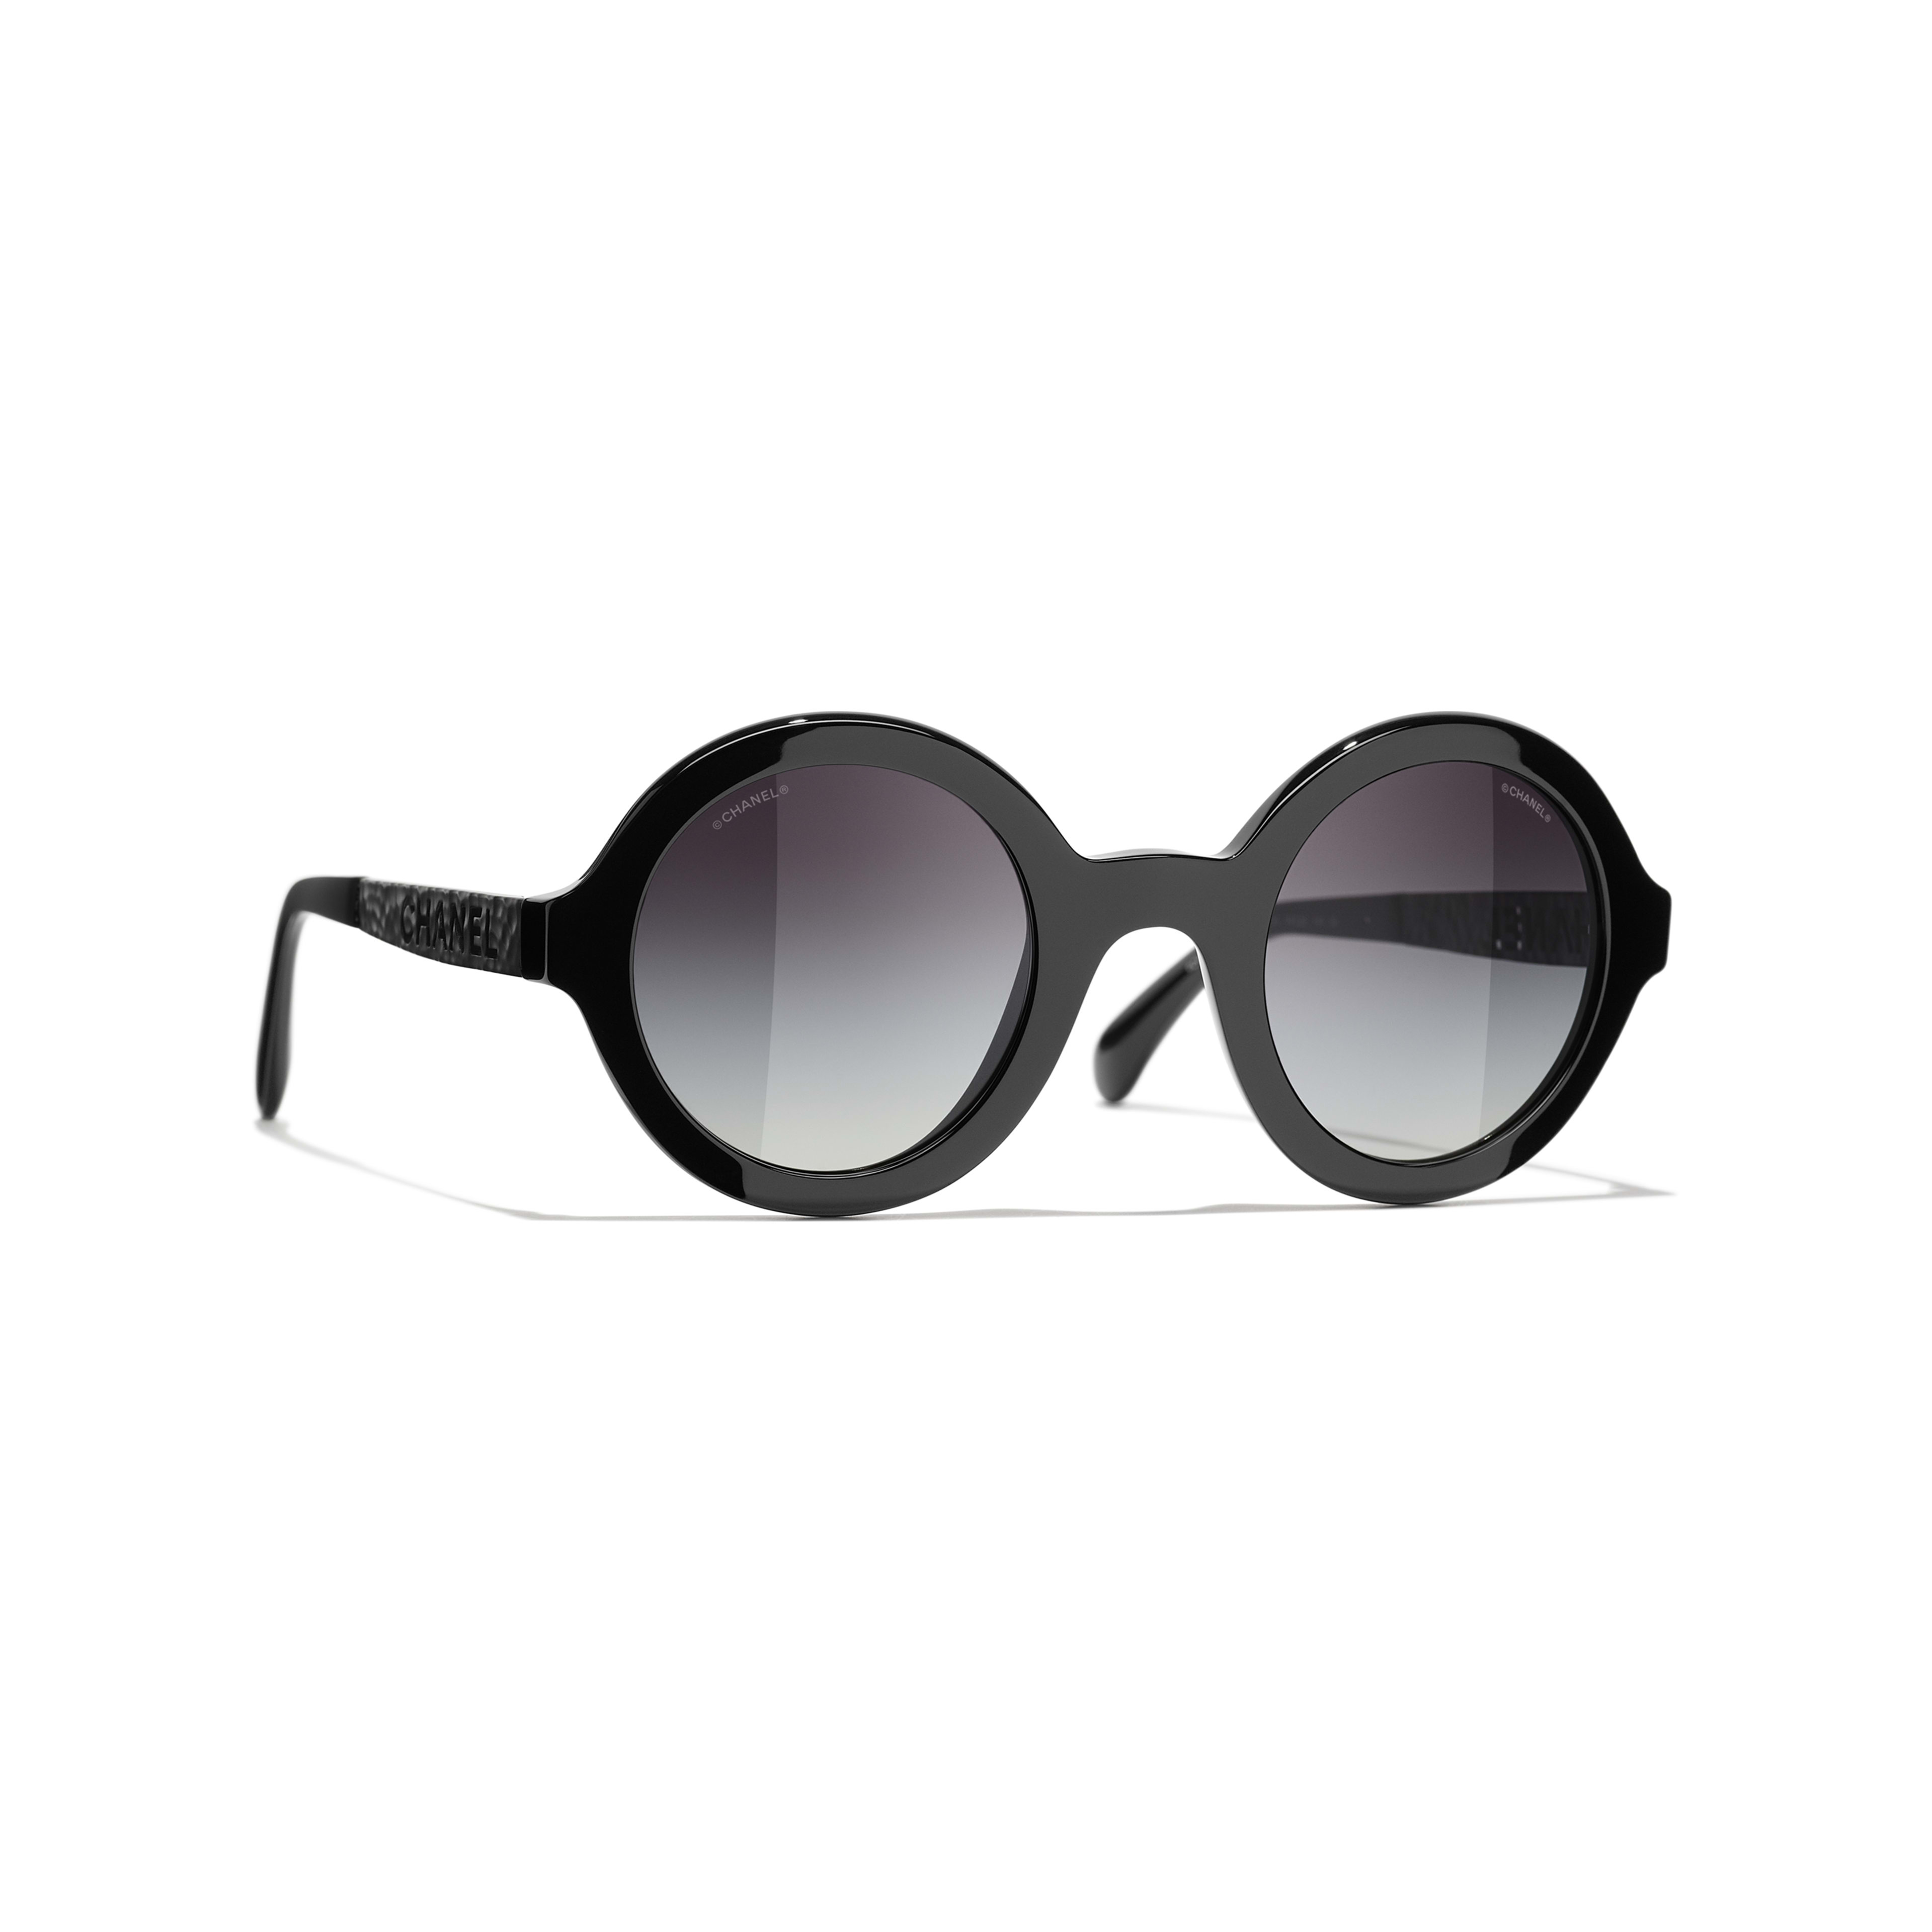 Round Sunglasses - Black - Acetate & Metal - CHANEL - Default view - see standard sized version